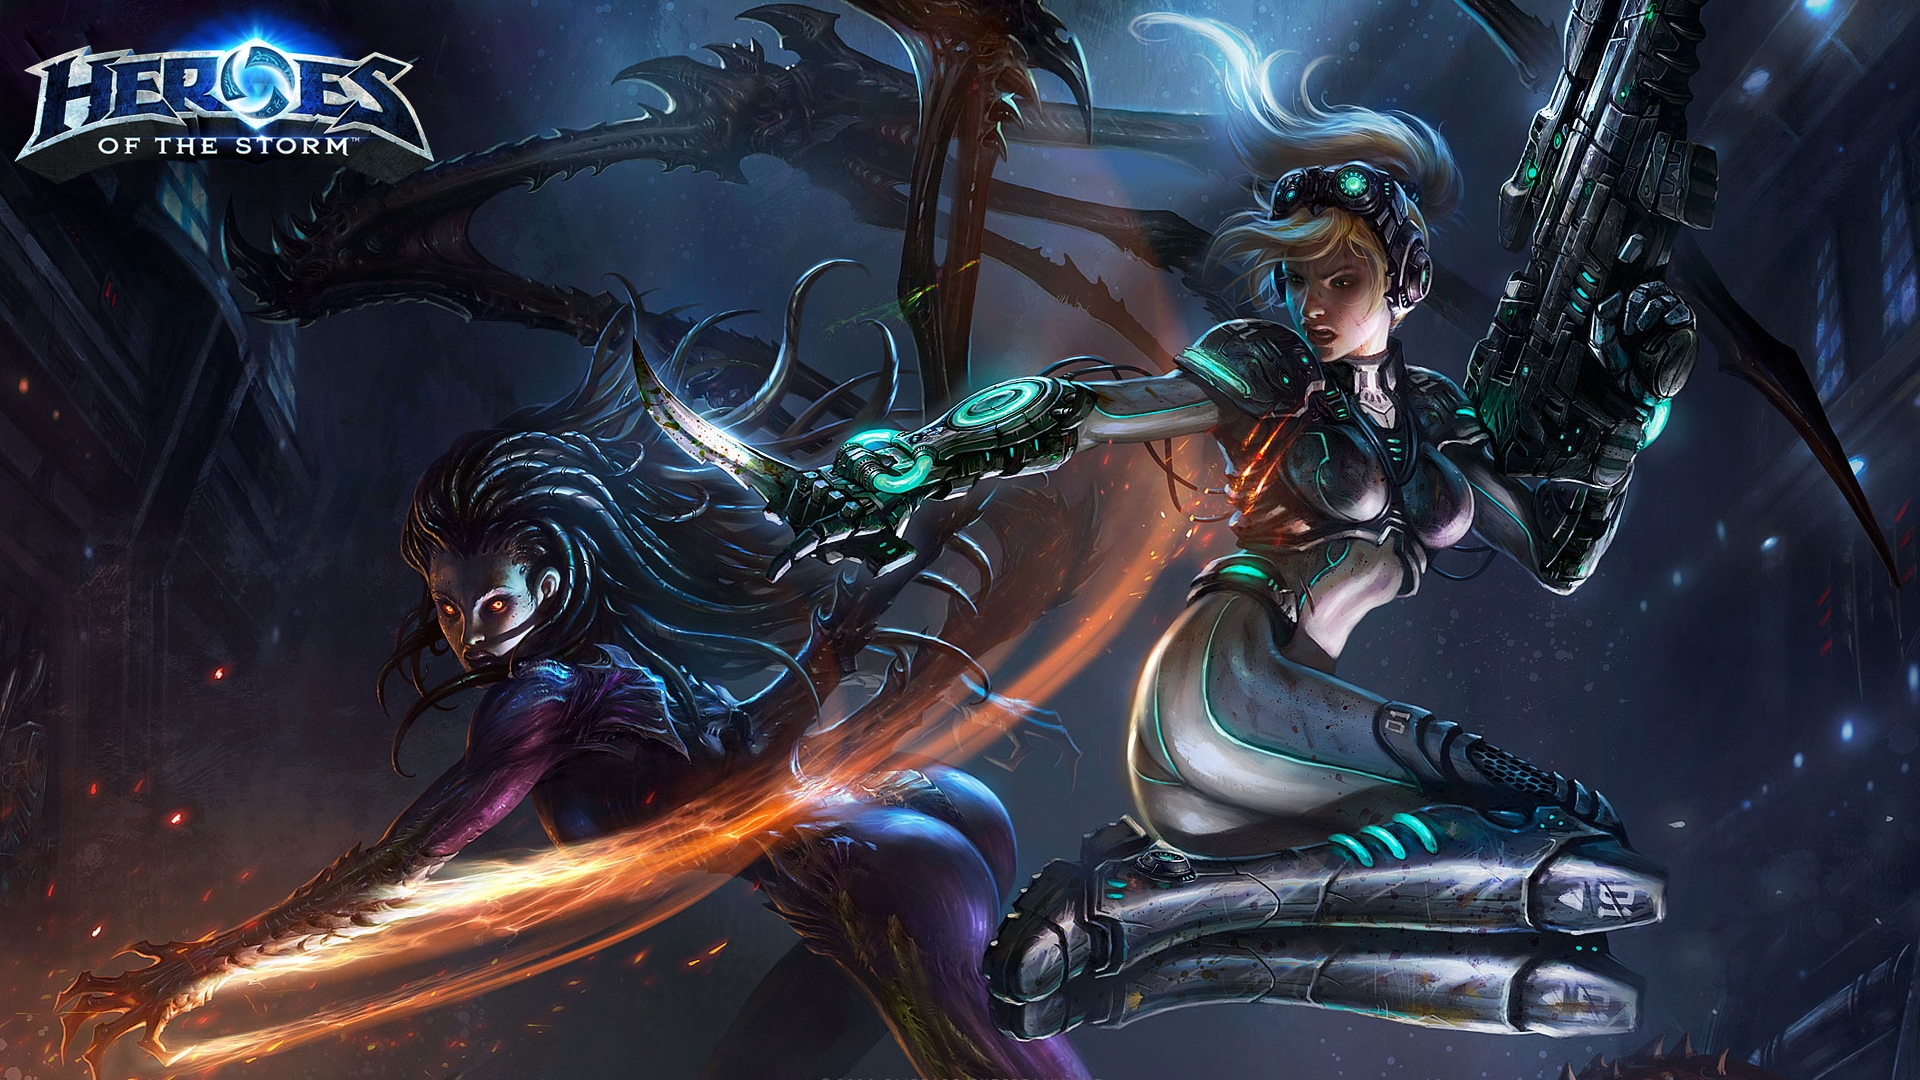 Free Download Heroes Of The Storm Hd Wallpaper Background Image